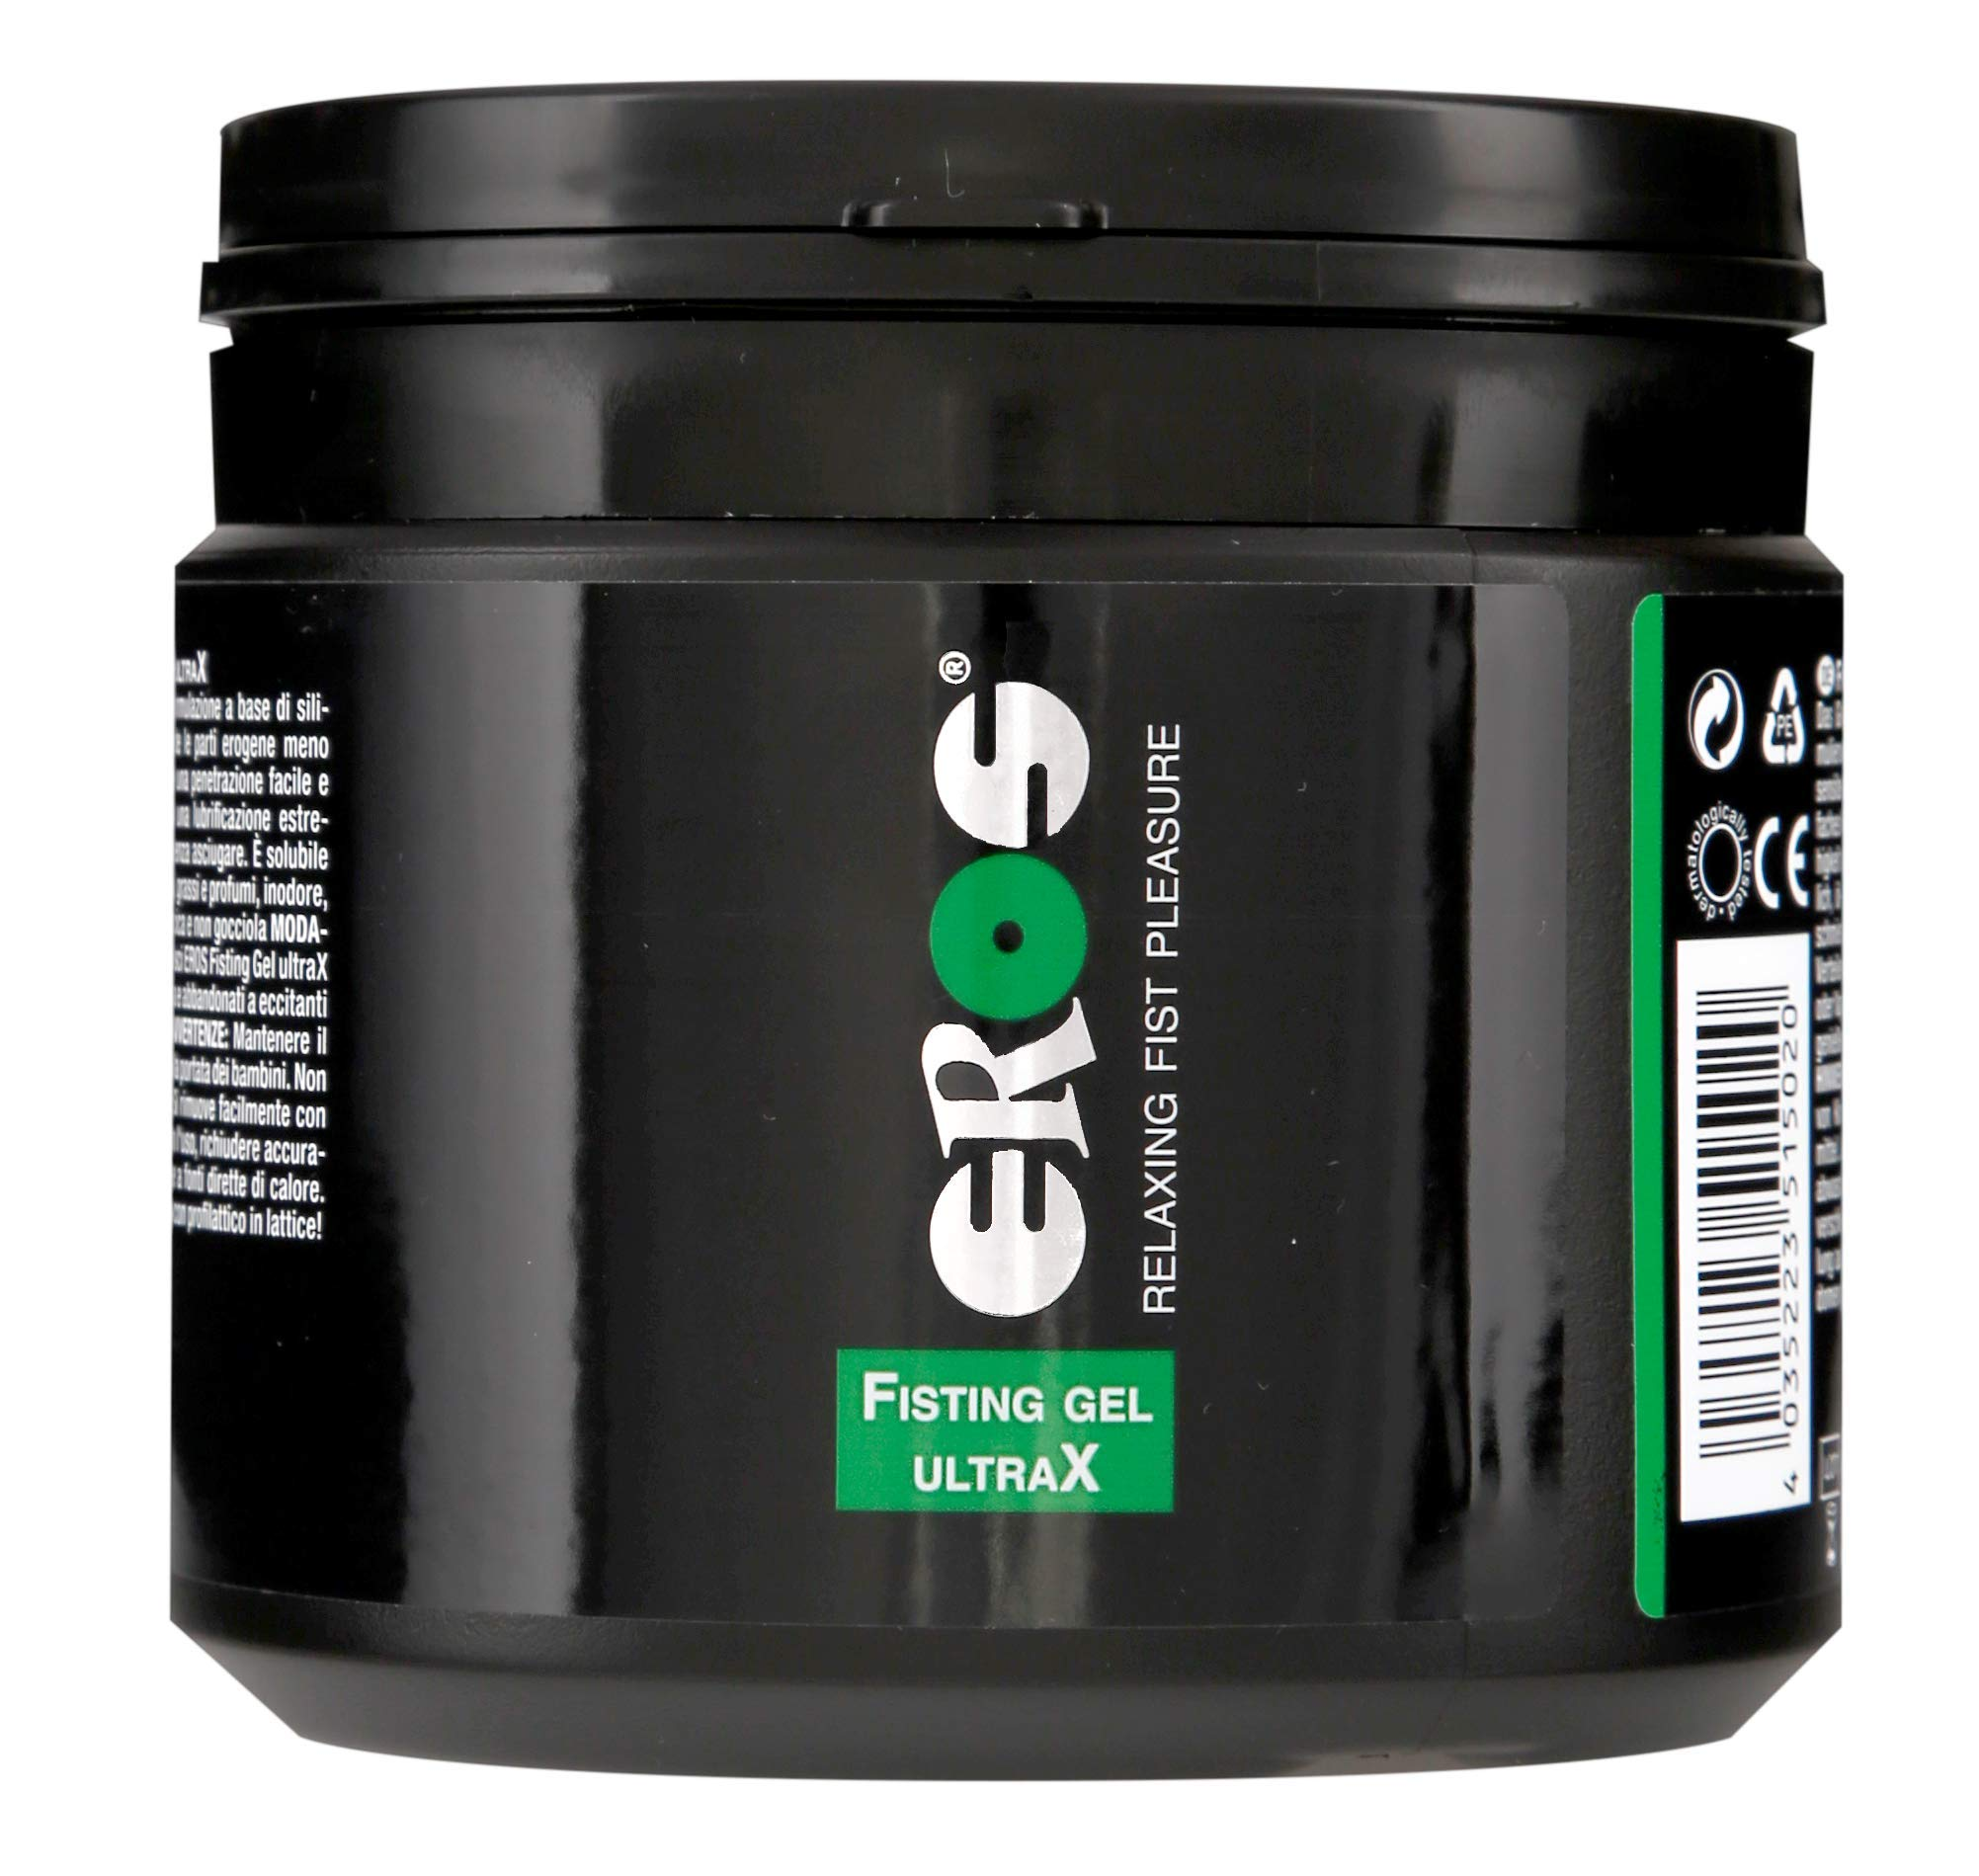 EROS Personal Lubricant for Fisting and Anal Sex - Thick and Long Lasting Back-Door Relaxing Gel - Hybrid Silicone and Water Based Anal Lube for Men   Women  Gays - 500-ml (17-oz) by EROS